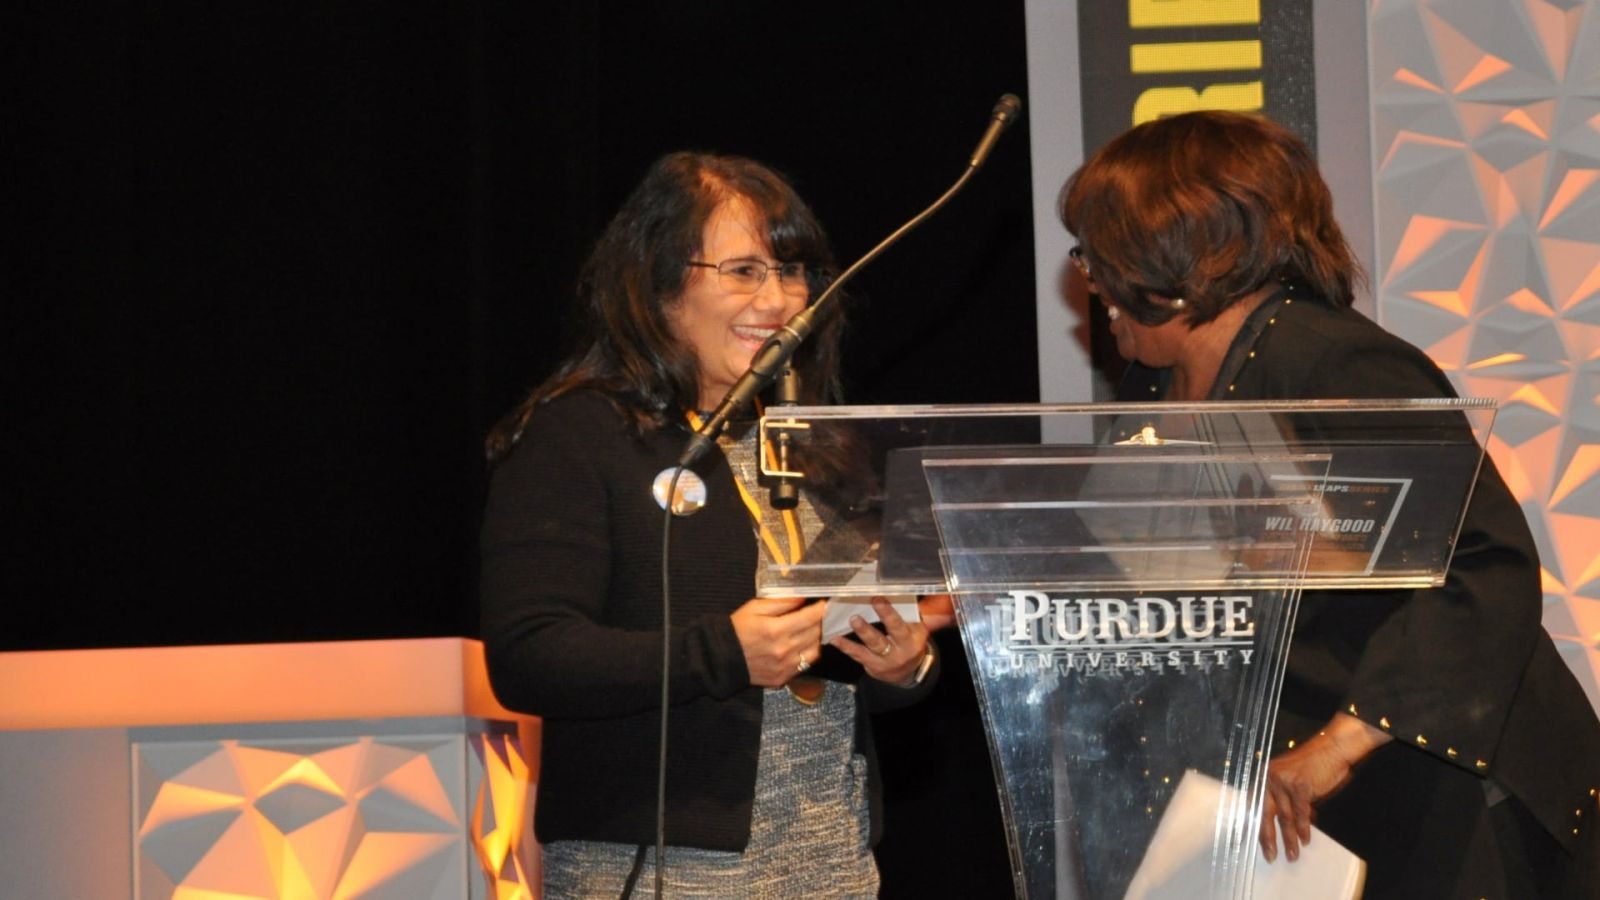 Carolyn Johnson, right, congratulates Toni Munguia on receiving the 2019 Dreamer Award